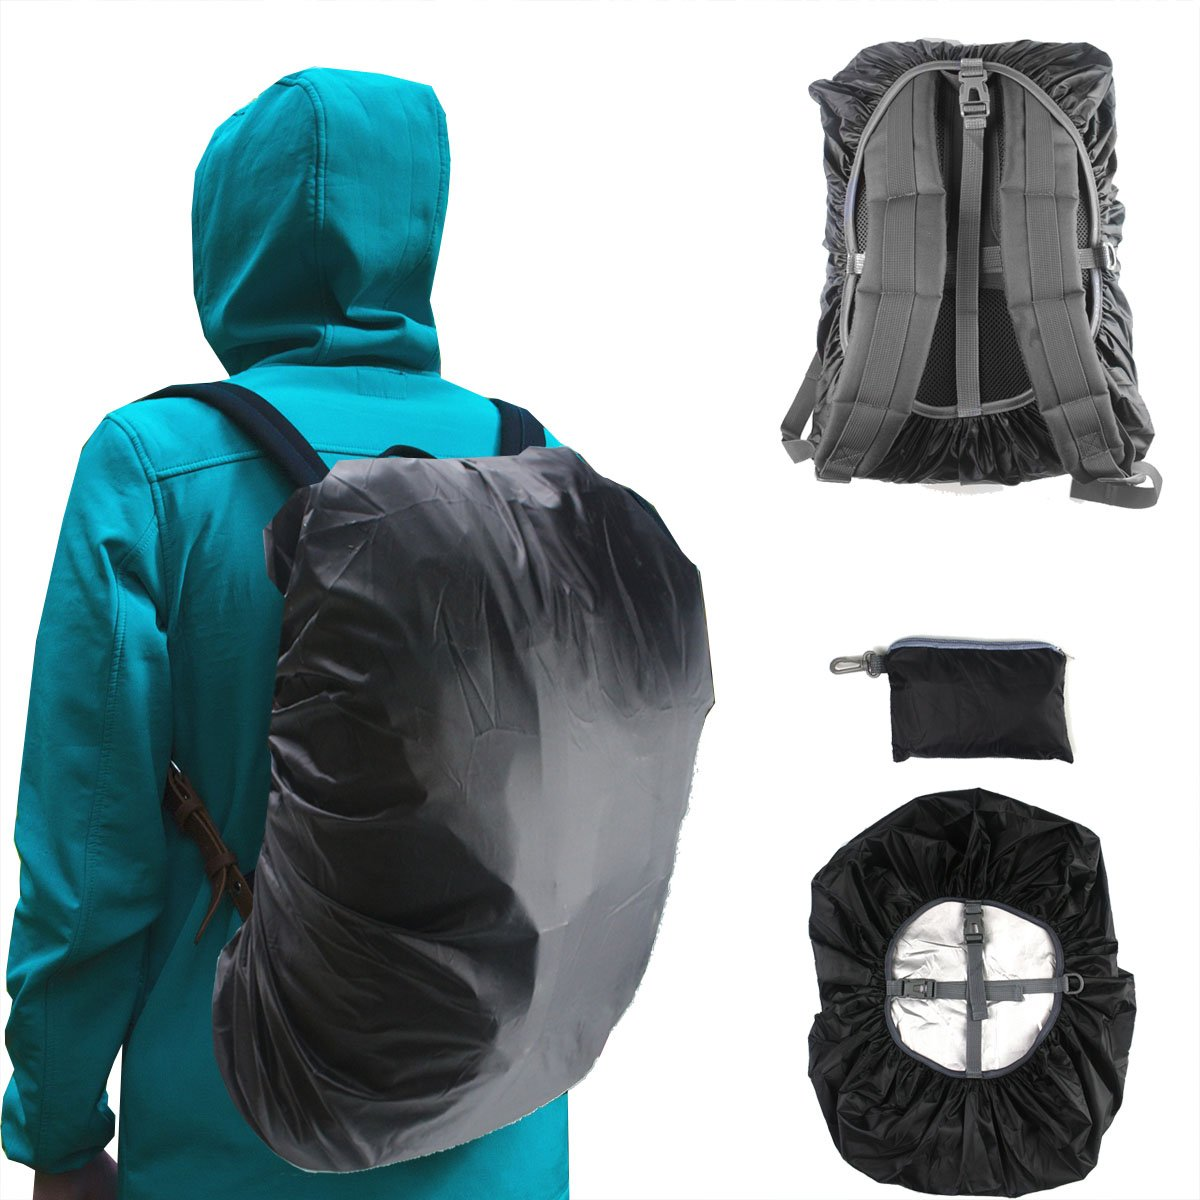 Frelaxy Waterproof Backpack Rain Cover Upgraded Vertical Adjustable Buckle Strap & Silver Coated for Hiking Camping Traveling Outdoor Activities